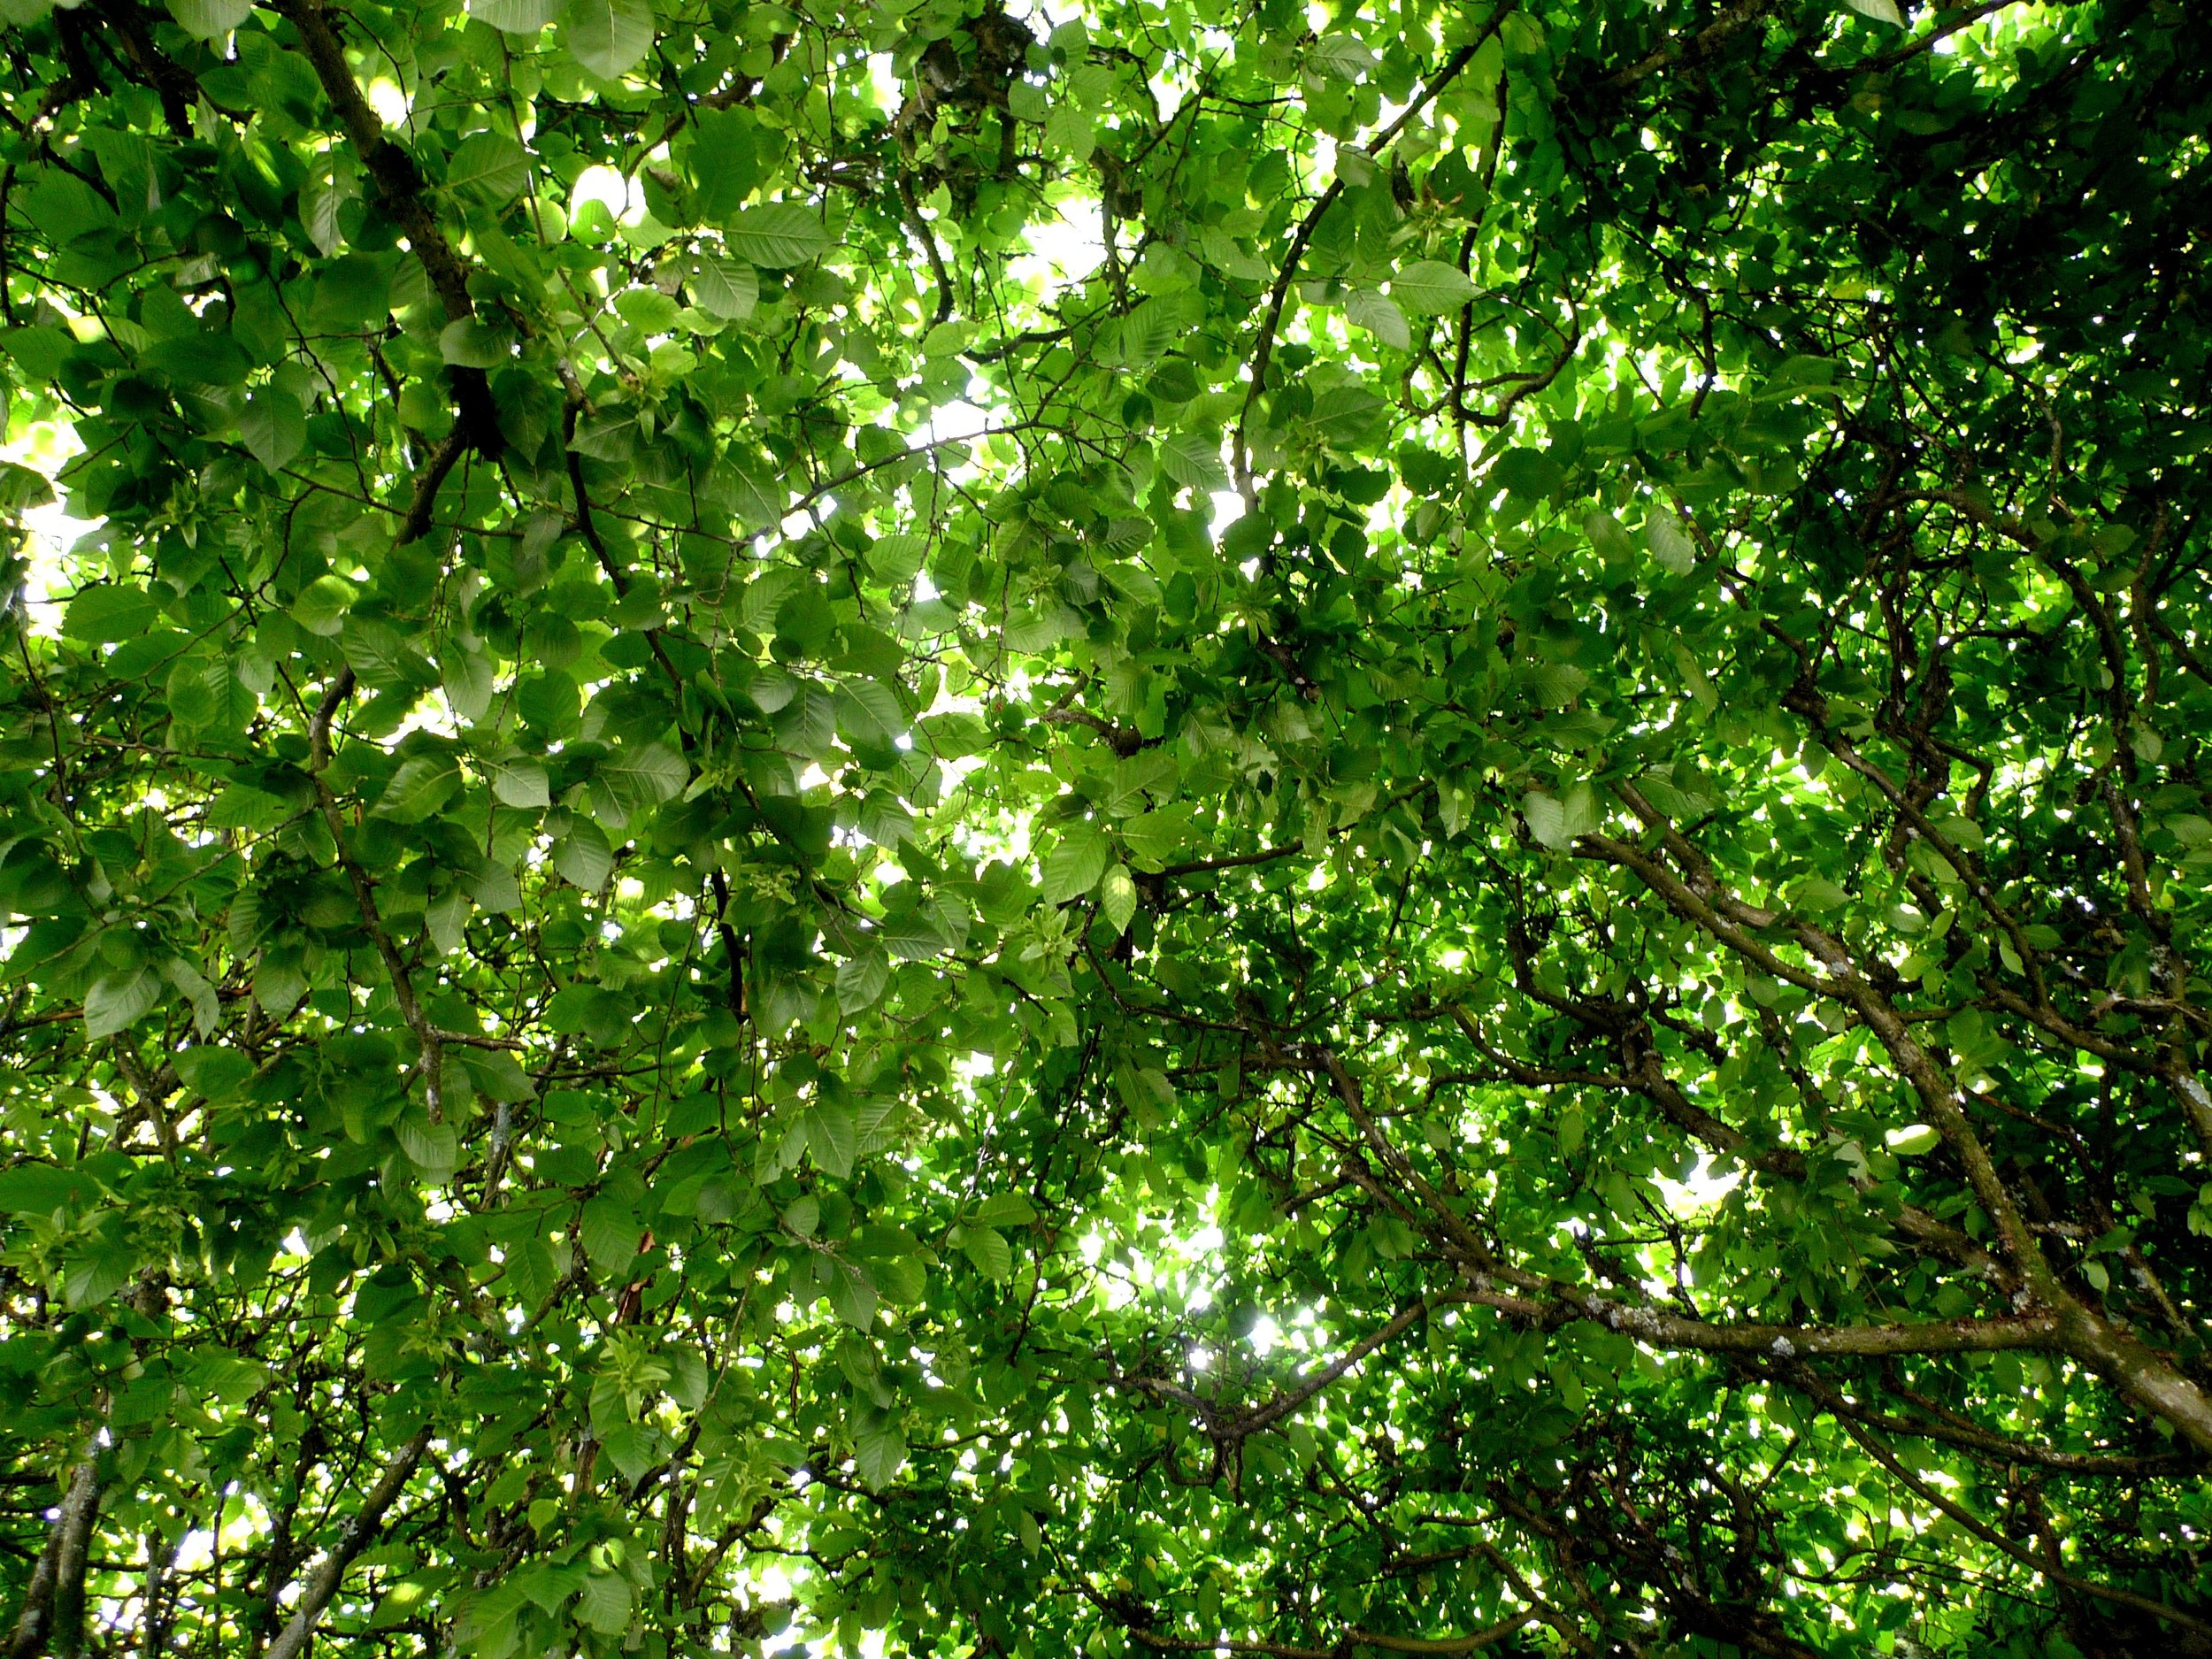 The tree canopy was fantastic and the shade was welcome too